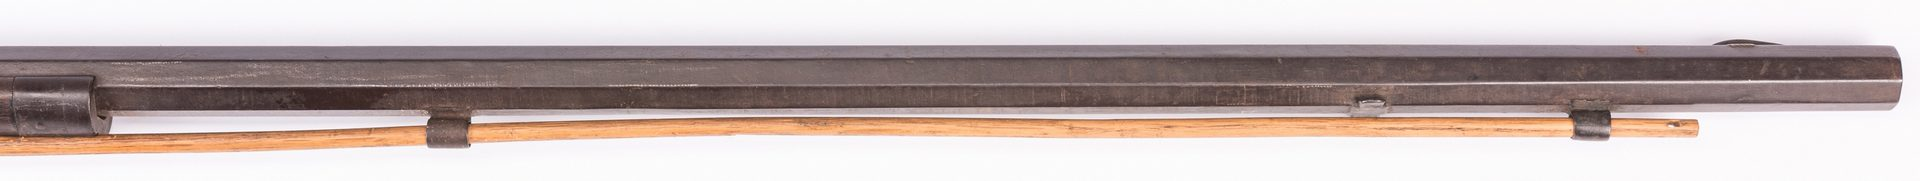 Lot 495: East Tennessee Half Stock Percussion Rifle, .38 Cal.